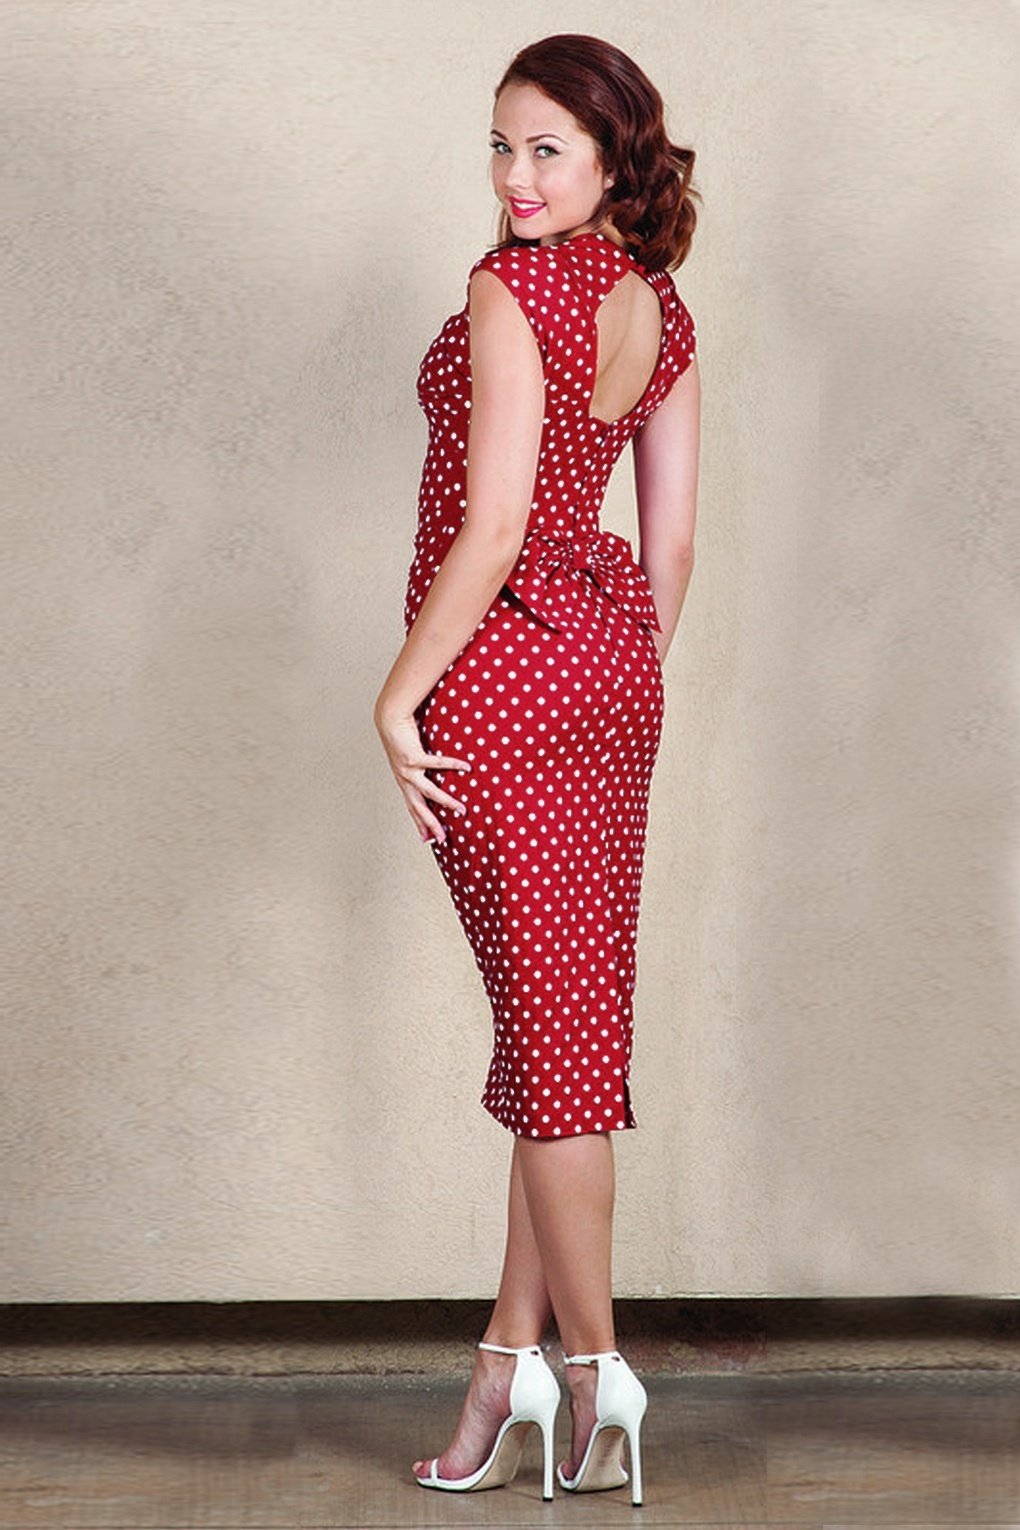 500 Vintage Style Dresses for Sale | Vintage Inspired Dresses Love Polkadot print Bow Pencil Dress Red £195.54 AT vintagedancer.com